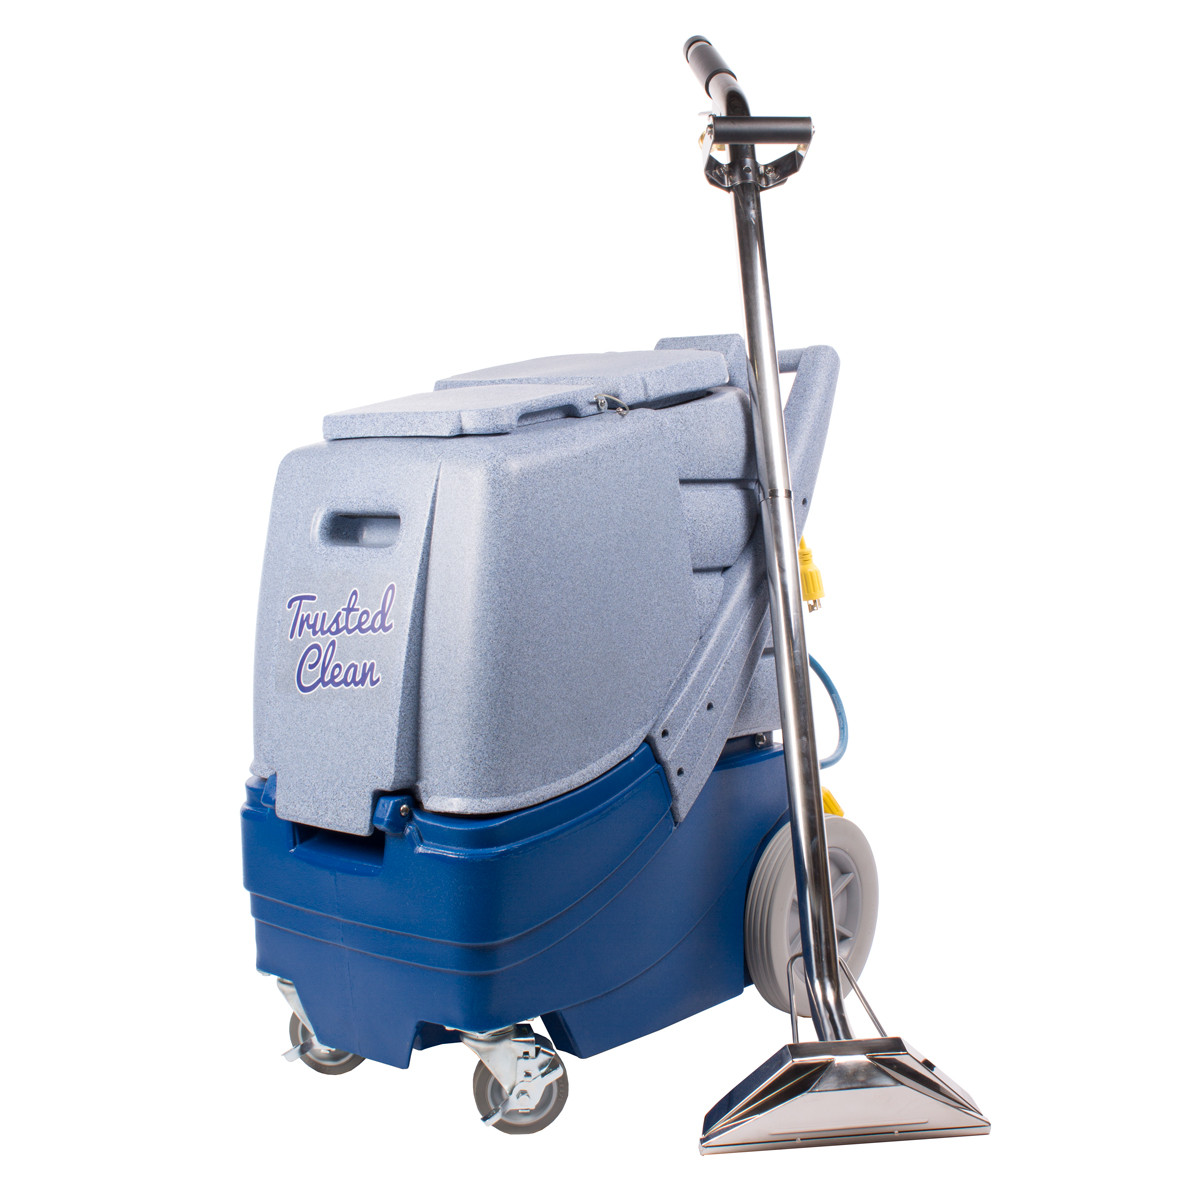 Carpet Cleaning Vacuum Trusted Clean 12 Gallon Heated Carpet Cleaning Machine